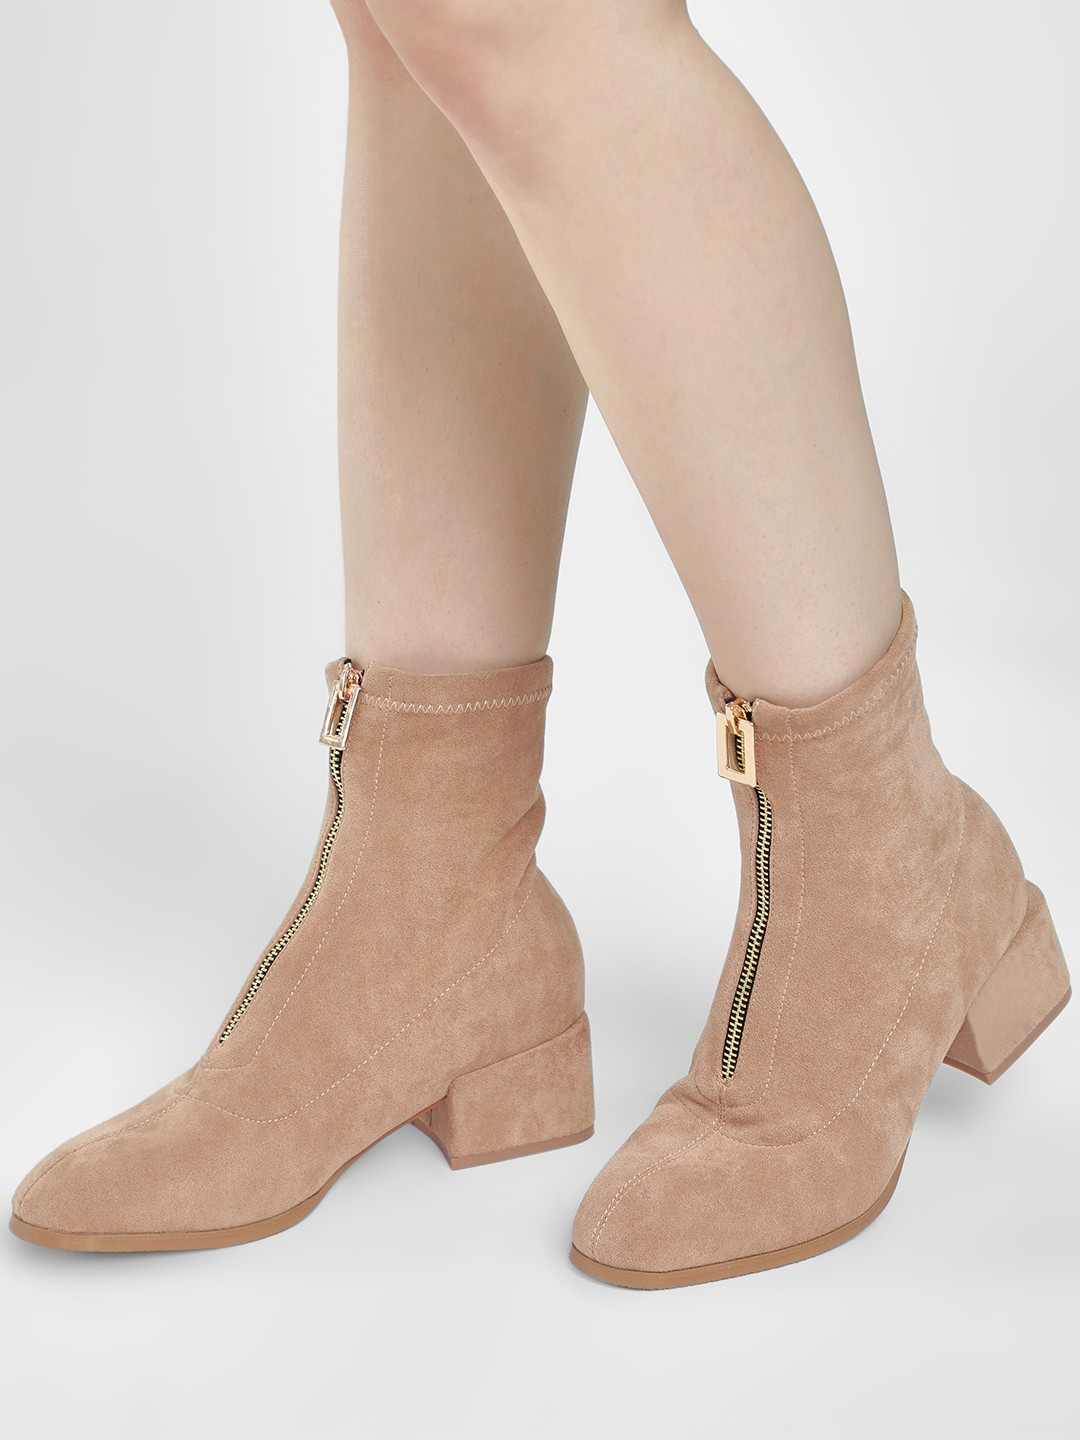 Sole Story Apricot Zip-Up Block Heel Ankle Boots 1